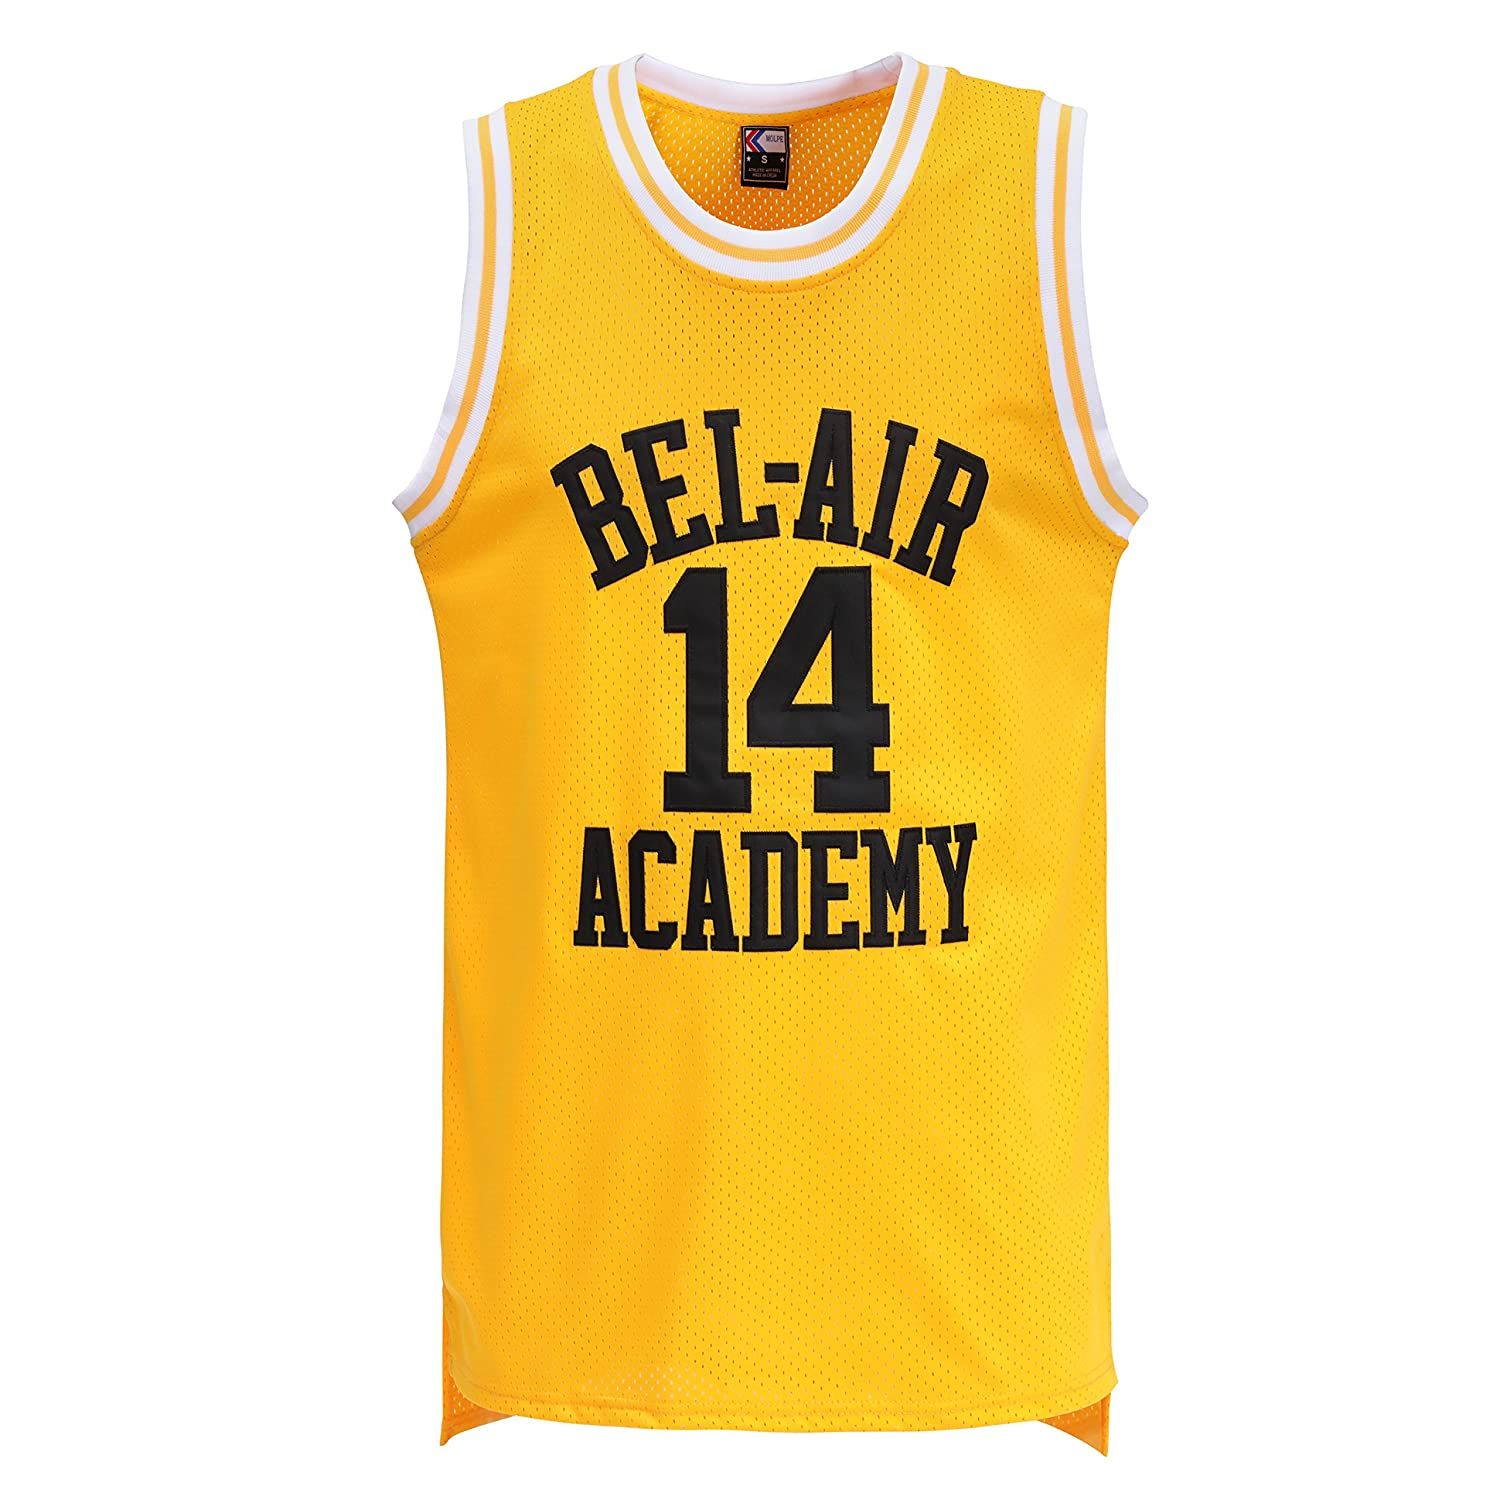 online store 5541f 5256d MOLPE Smith #14 Bel Air Academy Yellow Basketball Jersey S-XXXL, 90S Hip  Hop Clothing for Party, Stitched Letters and Numbers